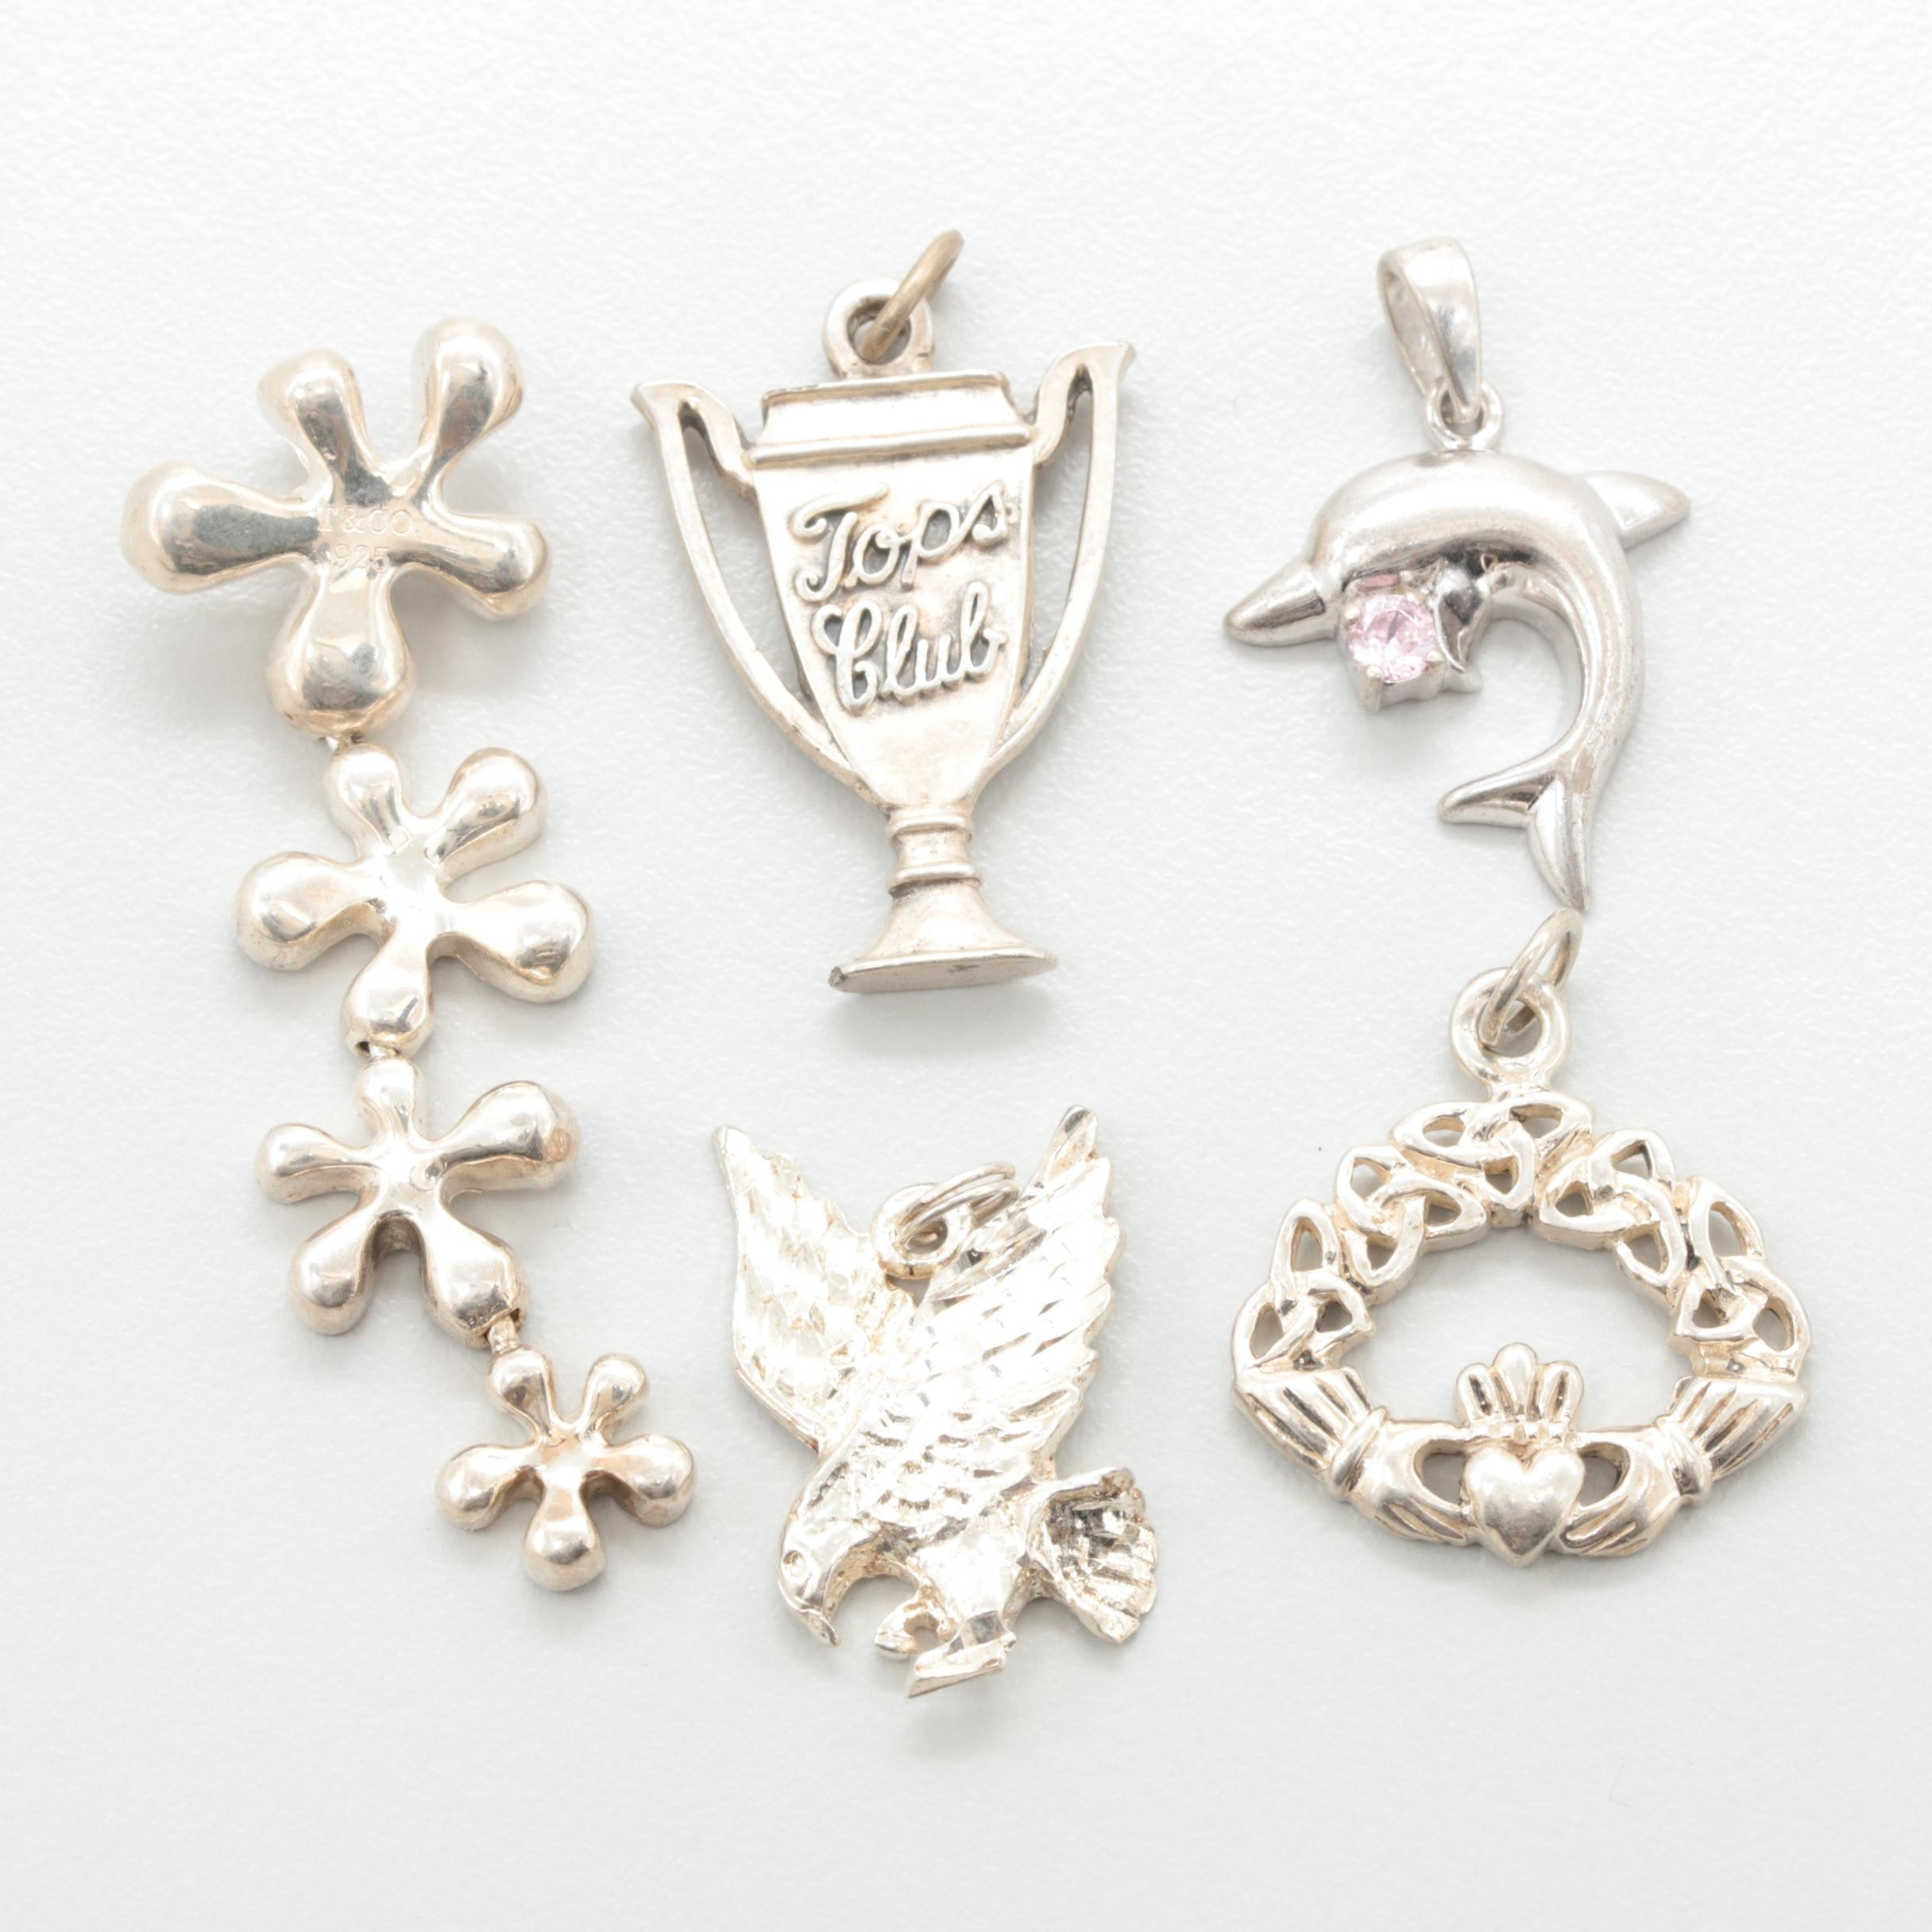 Sterling Silver Charm Assortment Featuring a Dolphin, Eagle, Trophy and Claddagh